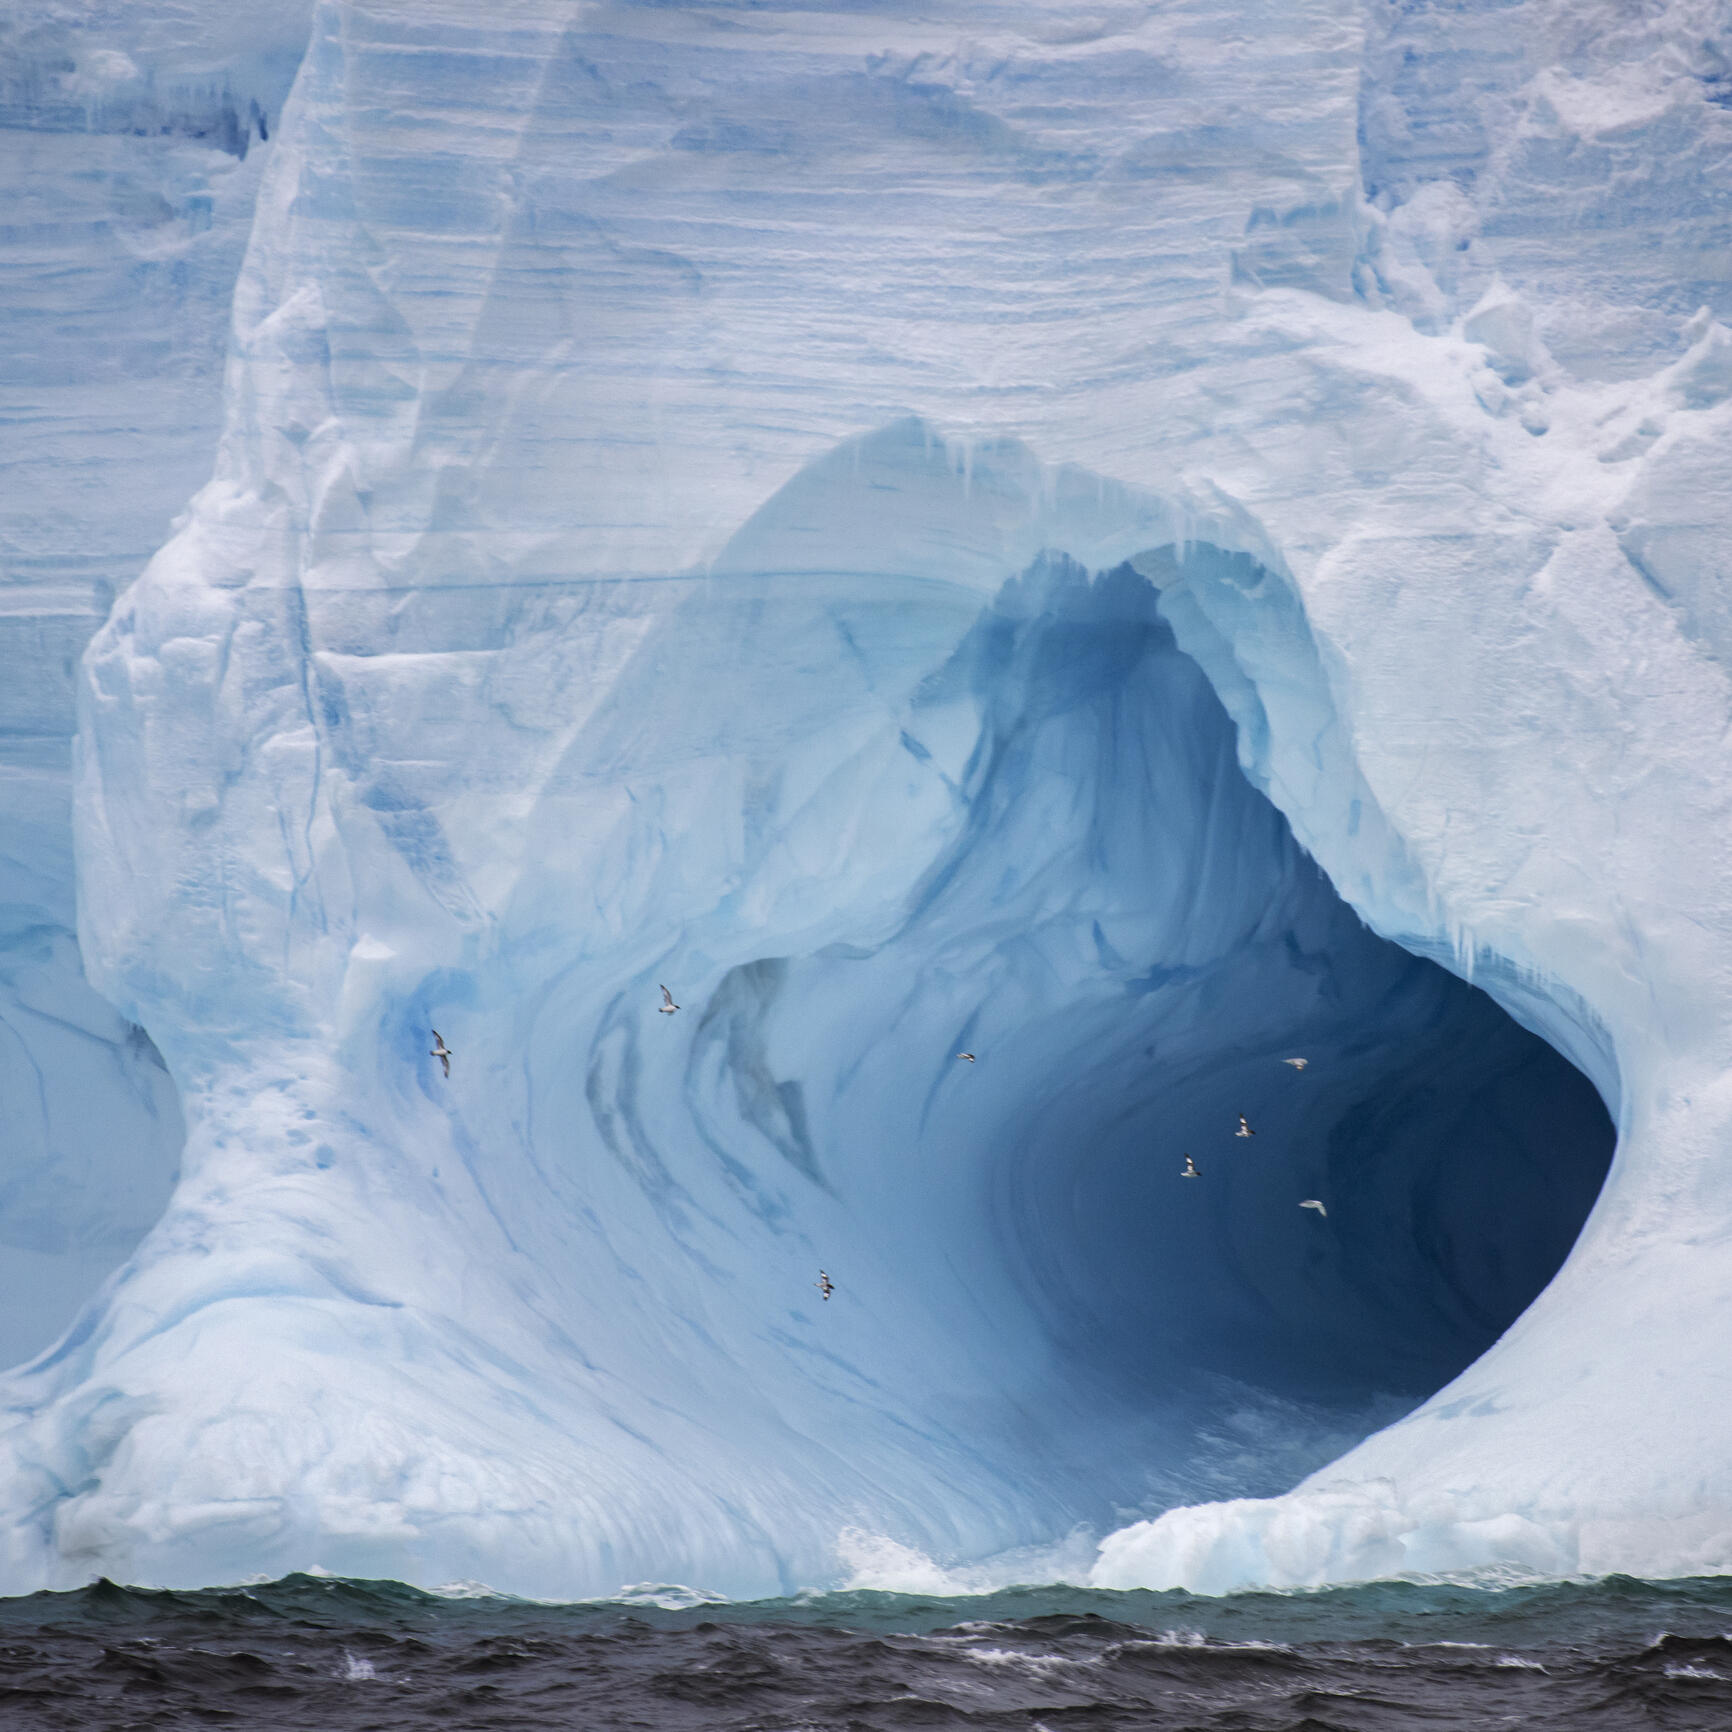 Here Is What Happens If You Drop Ice Down a Super Deep Hole in Antarctica | The Penthouse | Real Radio 94.3